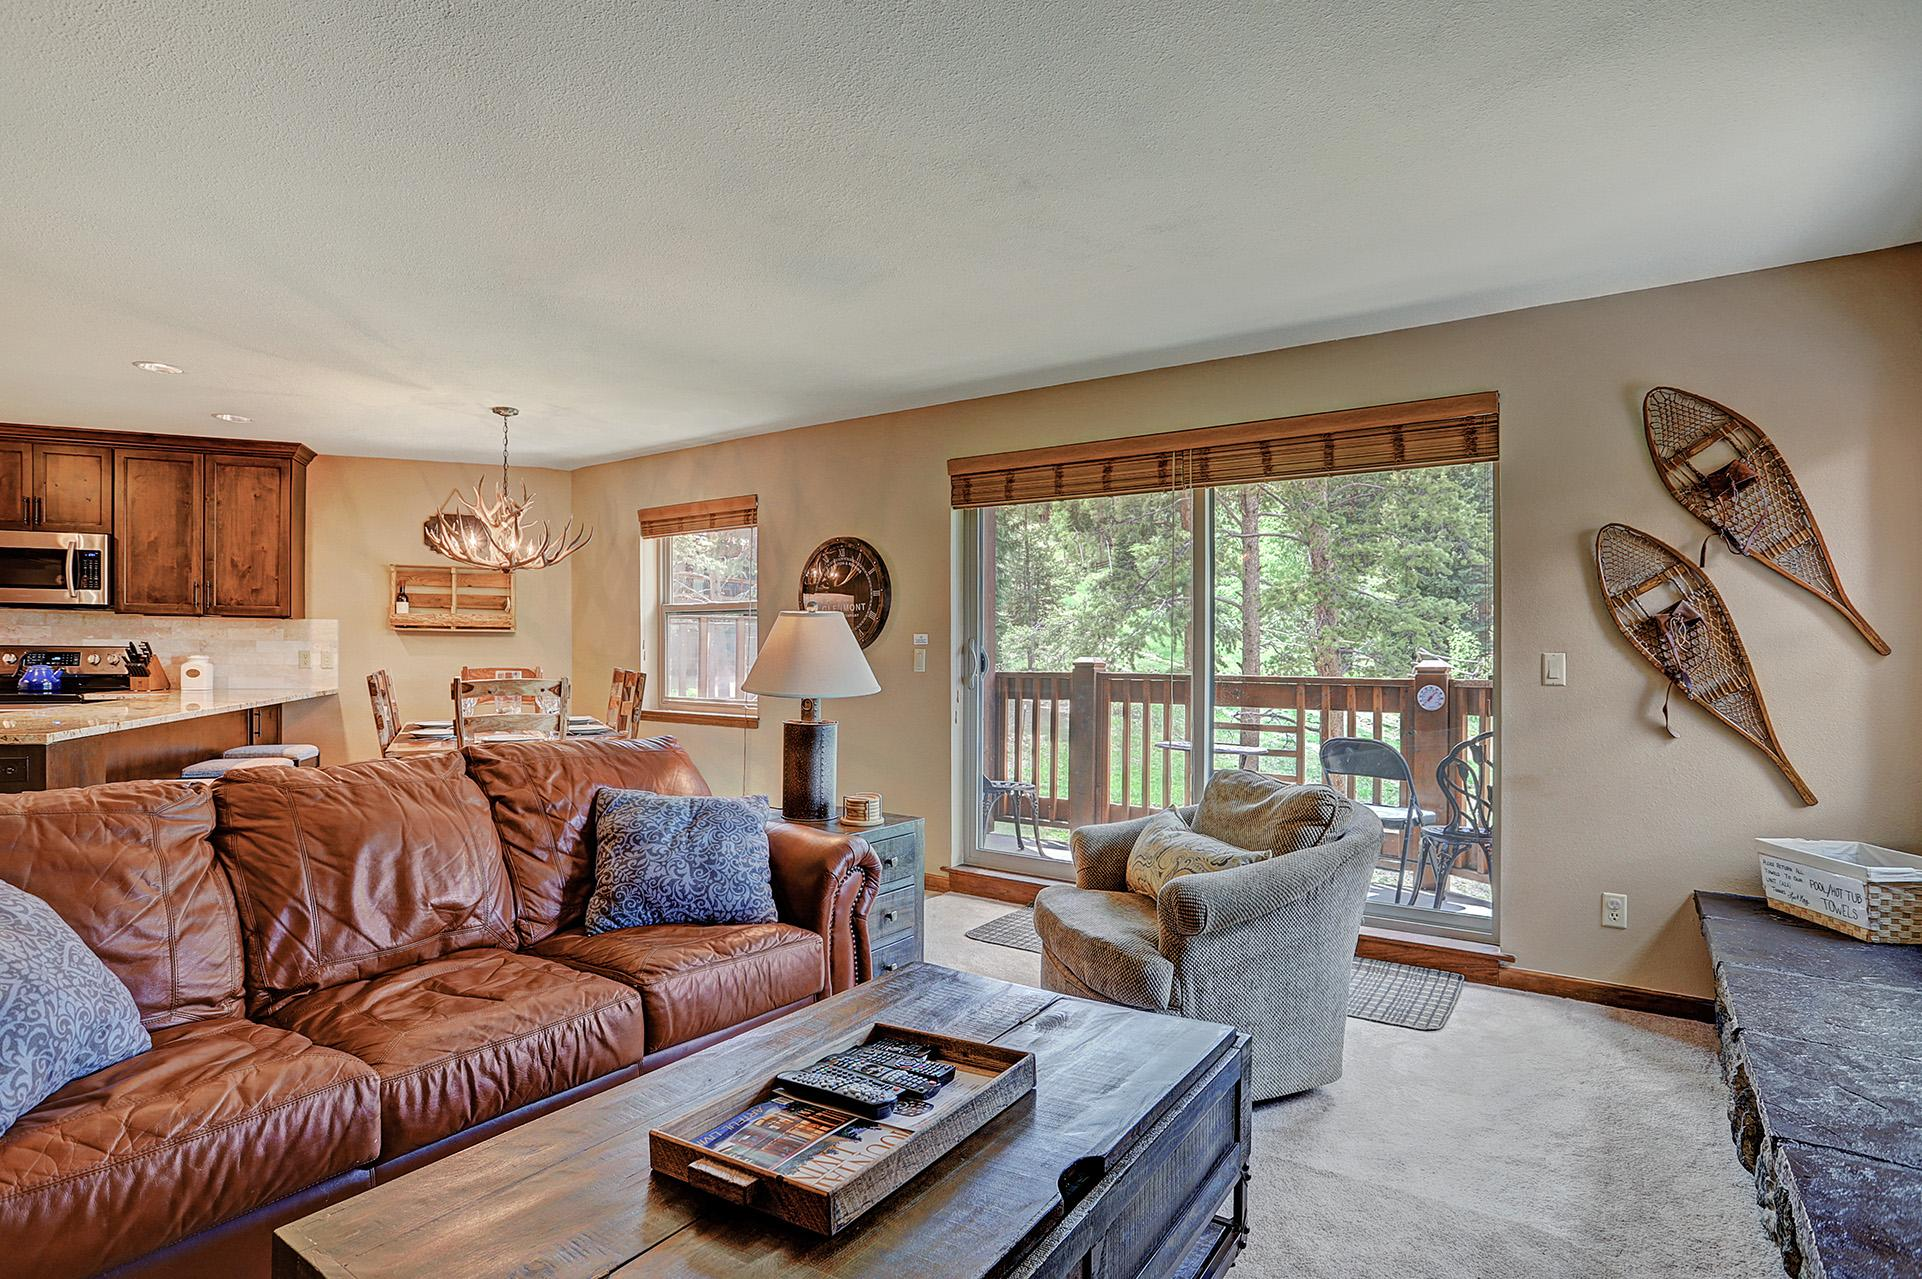 Charming condo with ski-in access on 4'Oclock Run